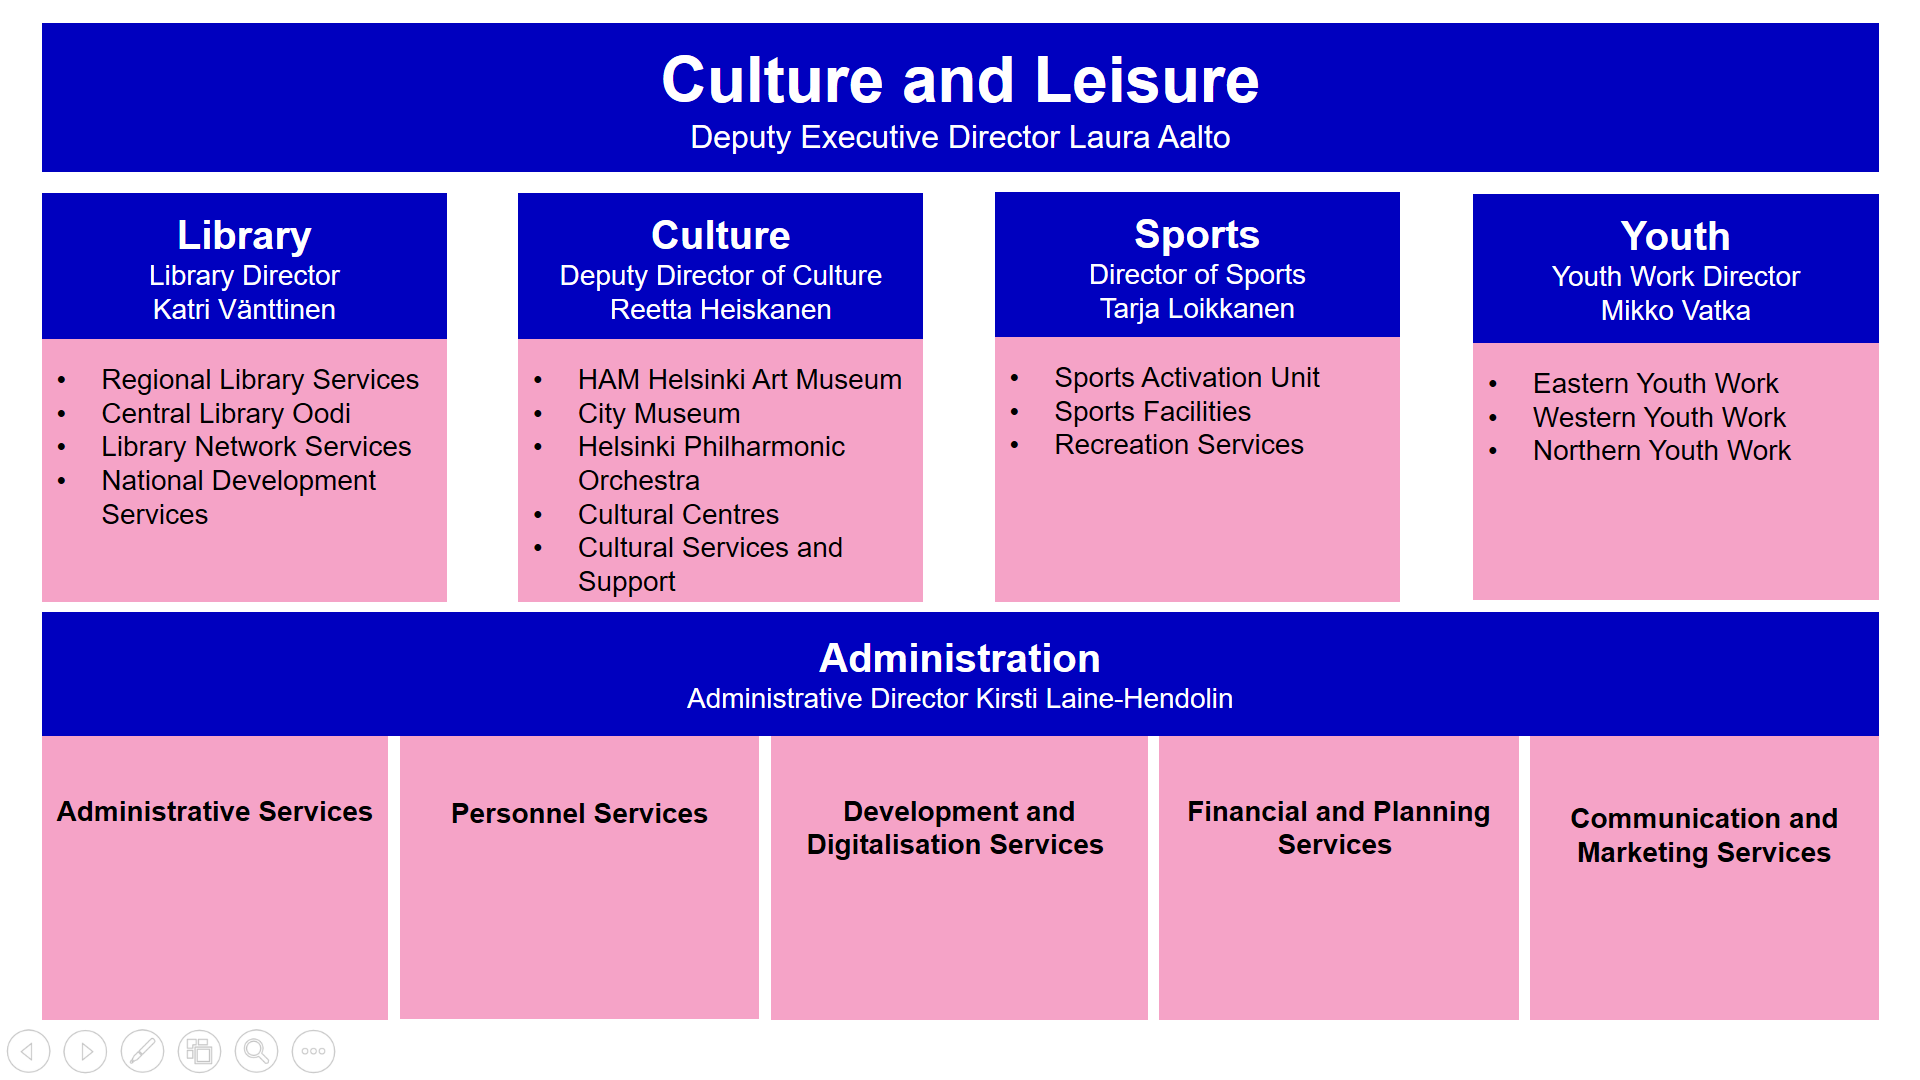 Organisation structure of Culture and Leisure sector